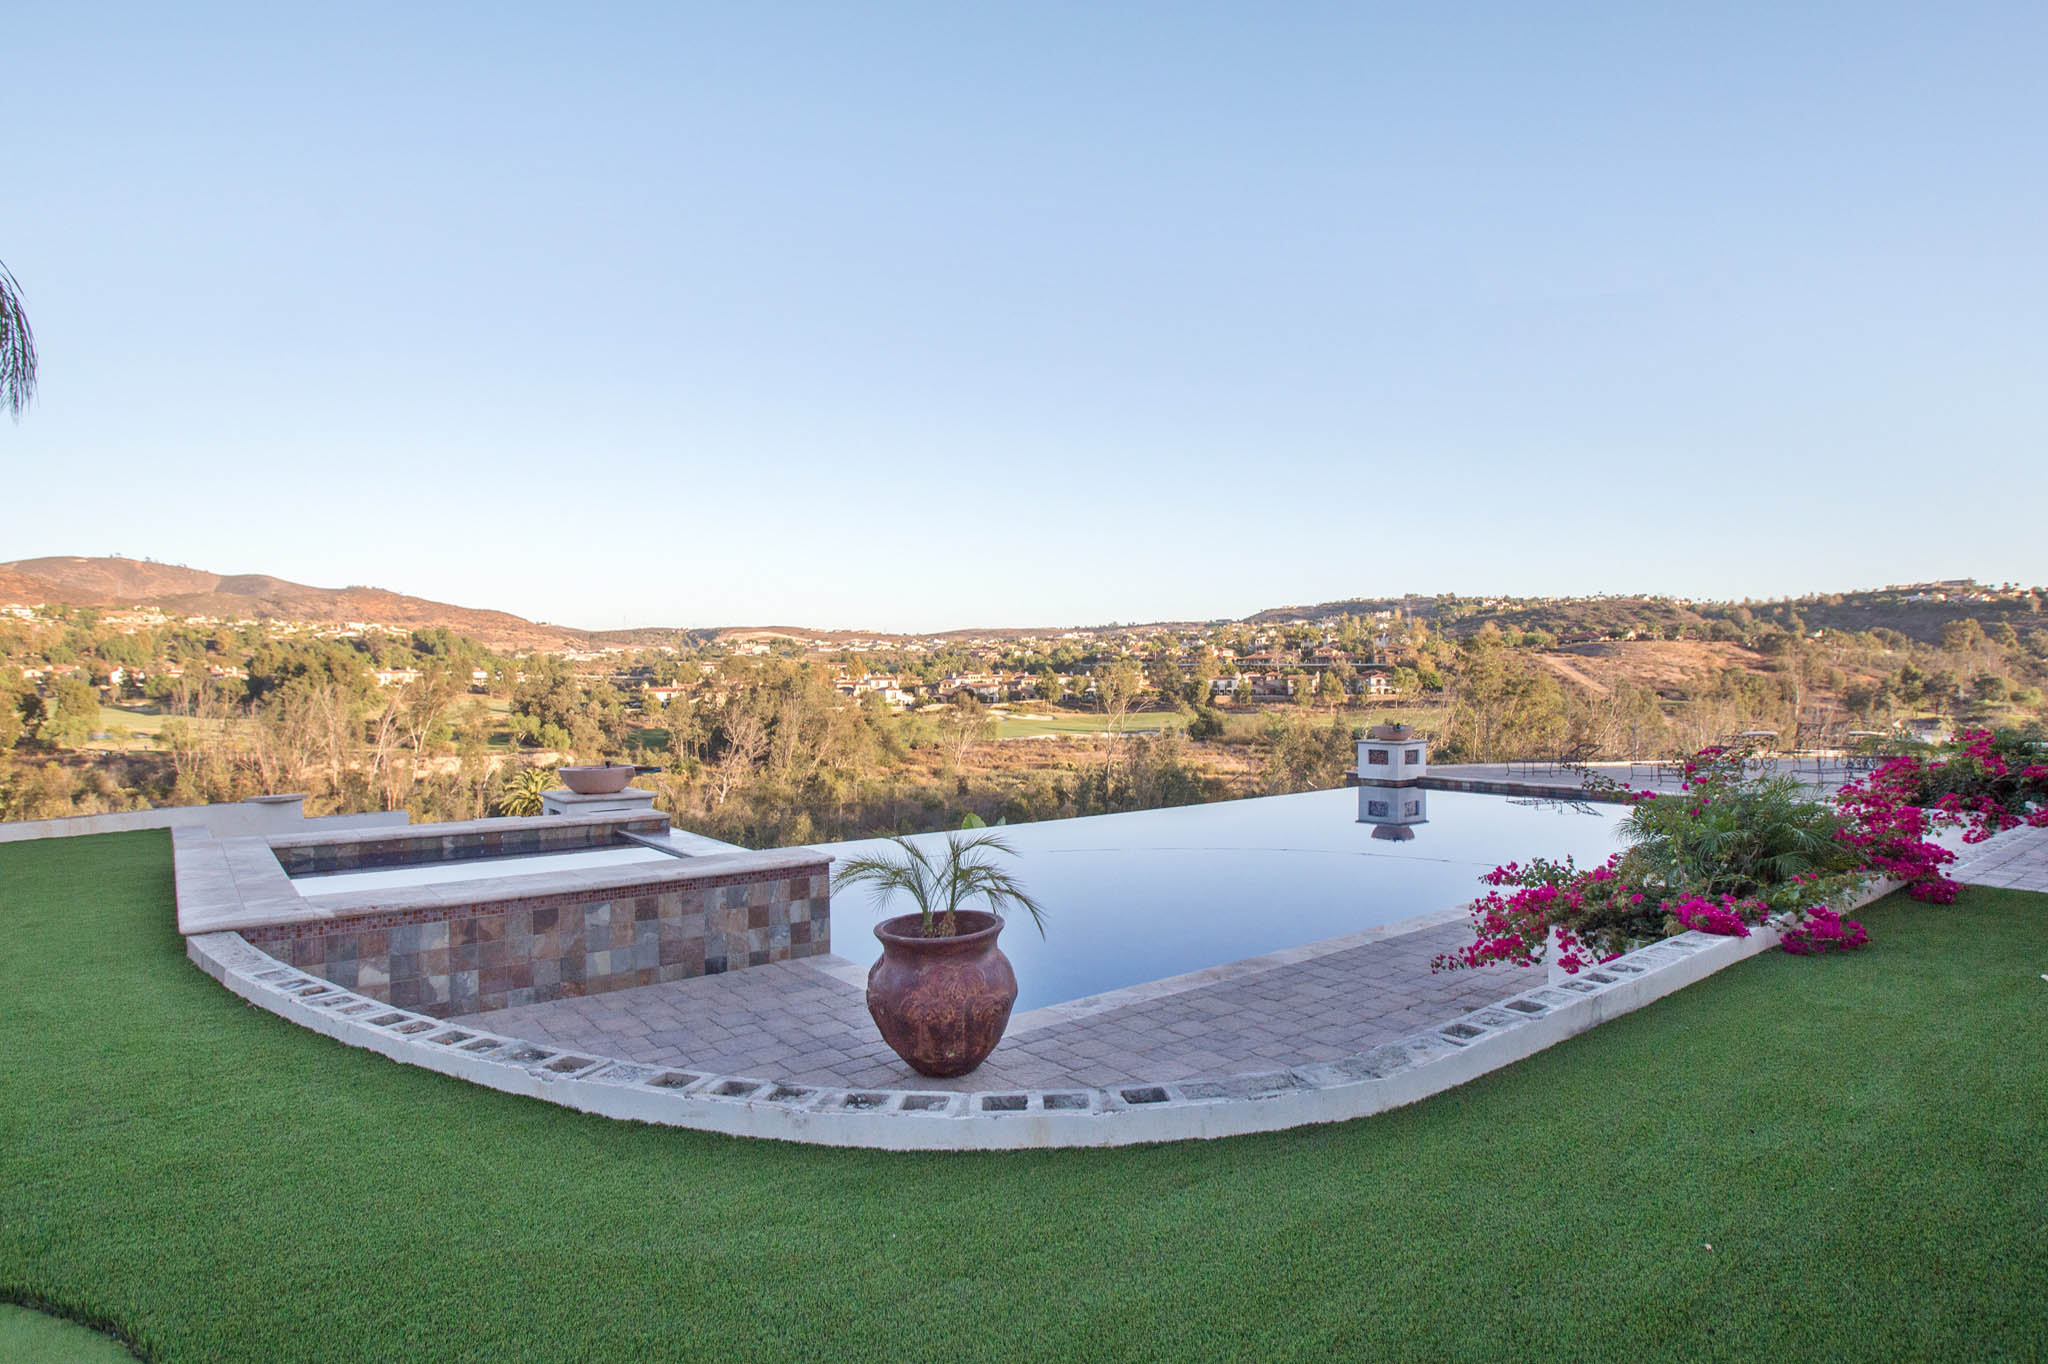 Located In Rancho Santa Fe, CA. Listing Agent: Becque Peters